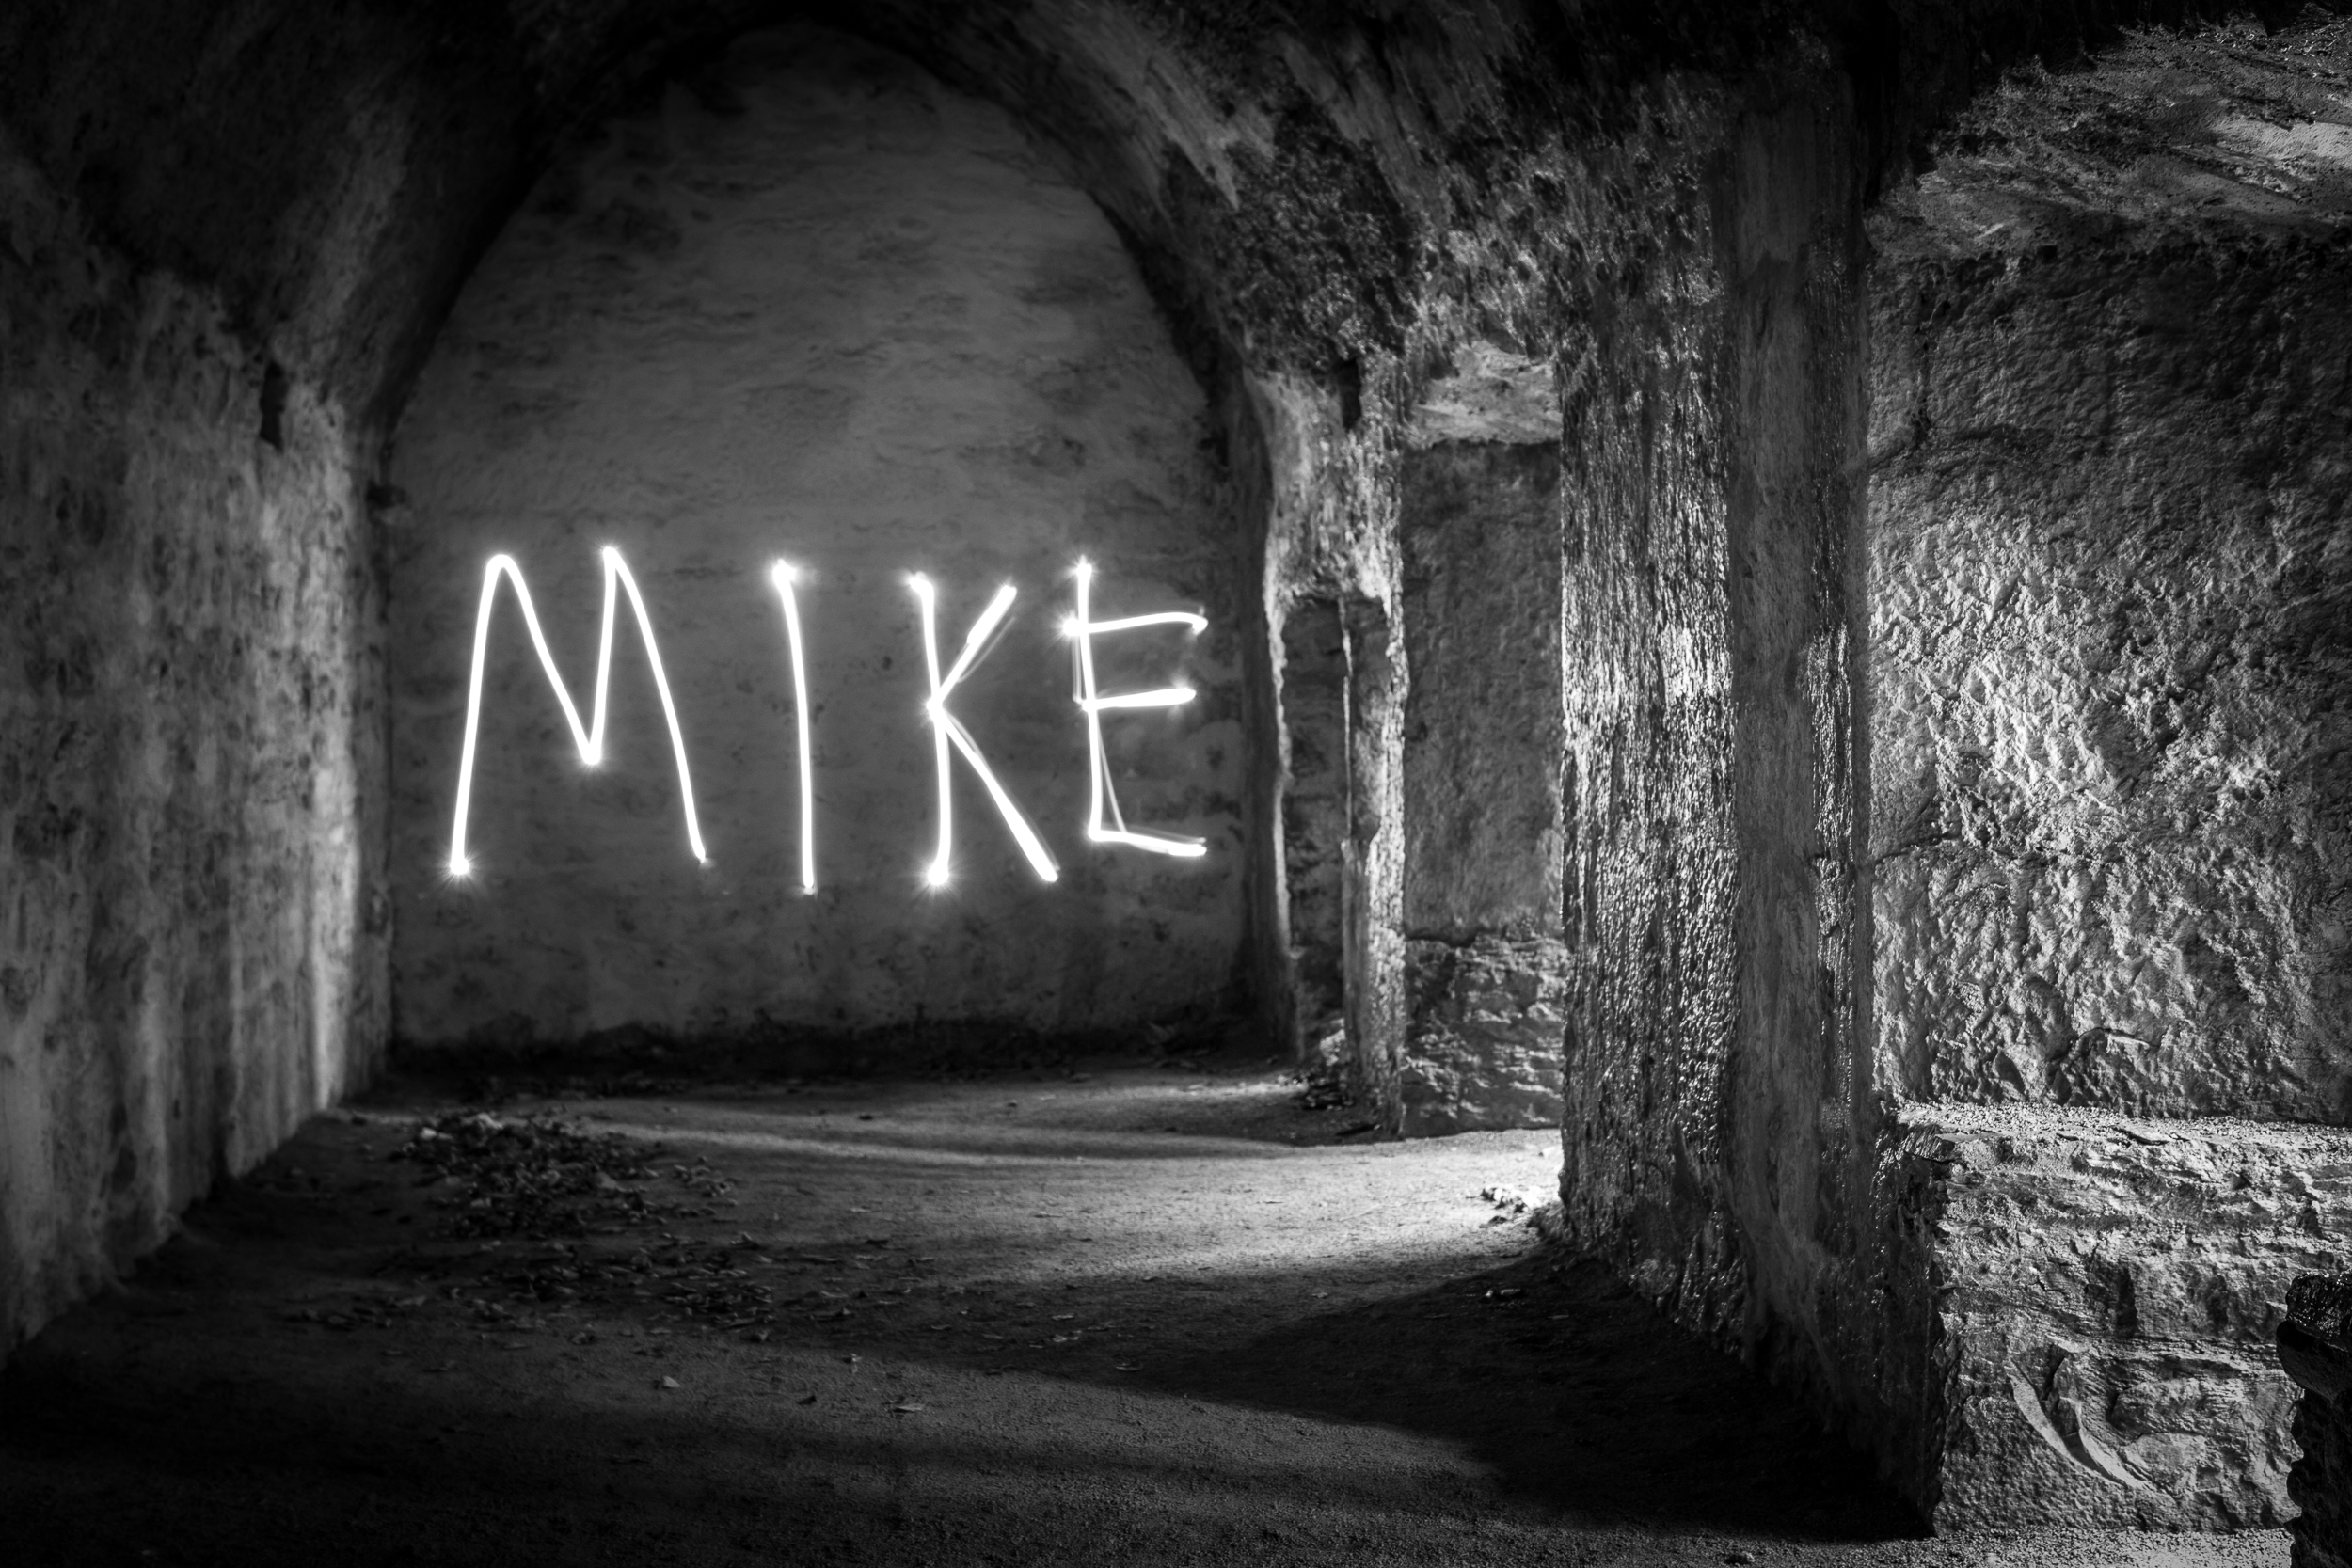 Light Graffiti: A form of self-expression and/or procrastination. In this case we can add narcissism to the mix.